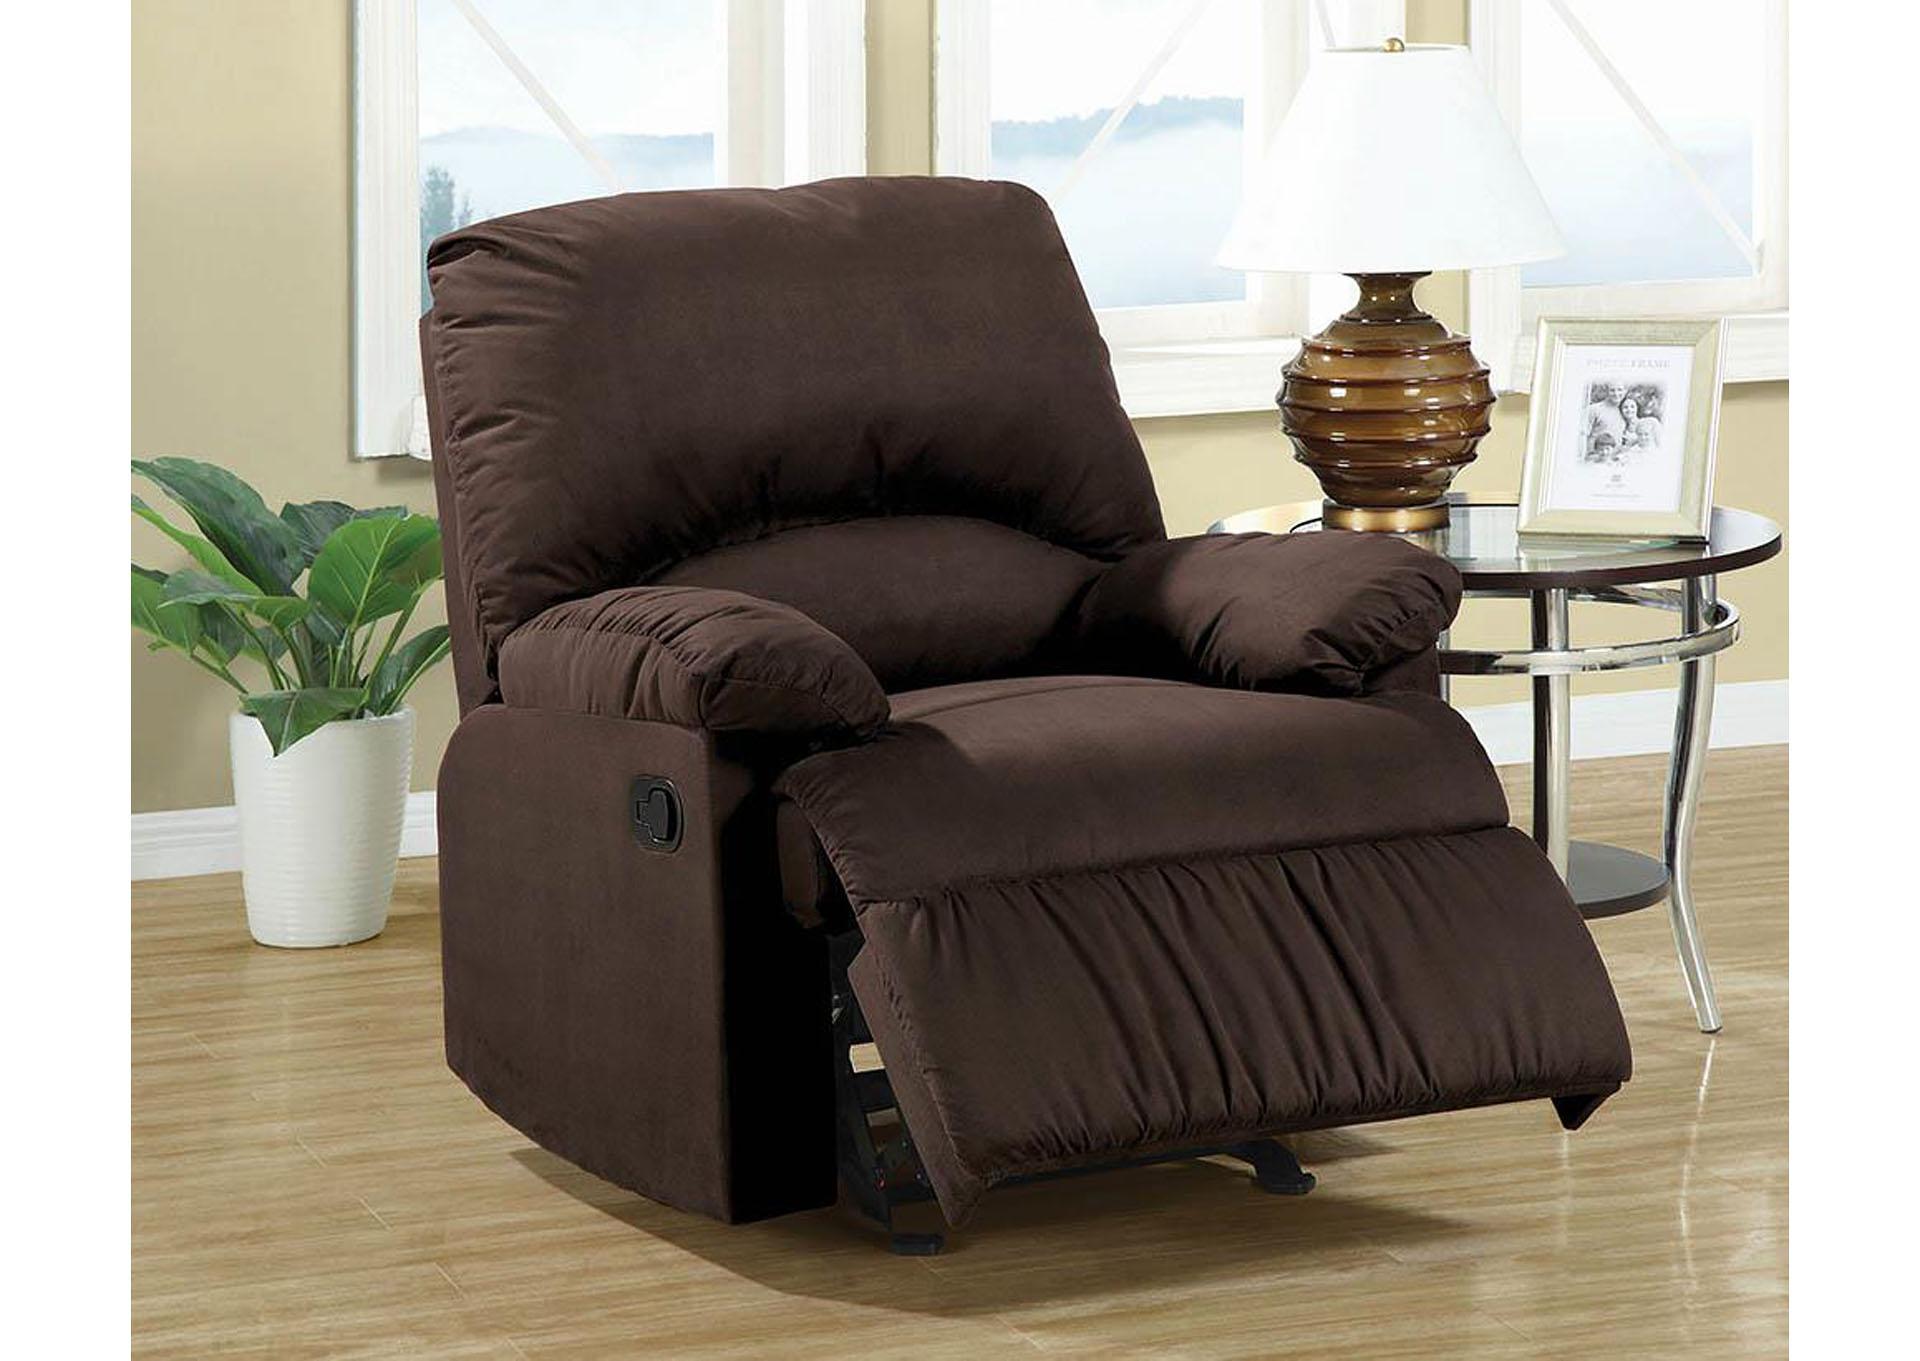 English Walnut Casual Chocolate Glider Recliner,Coaster Furniture